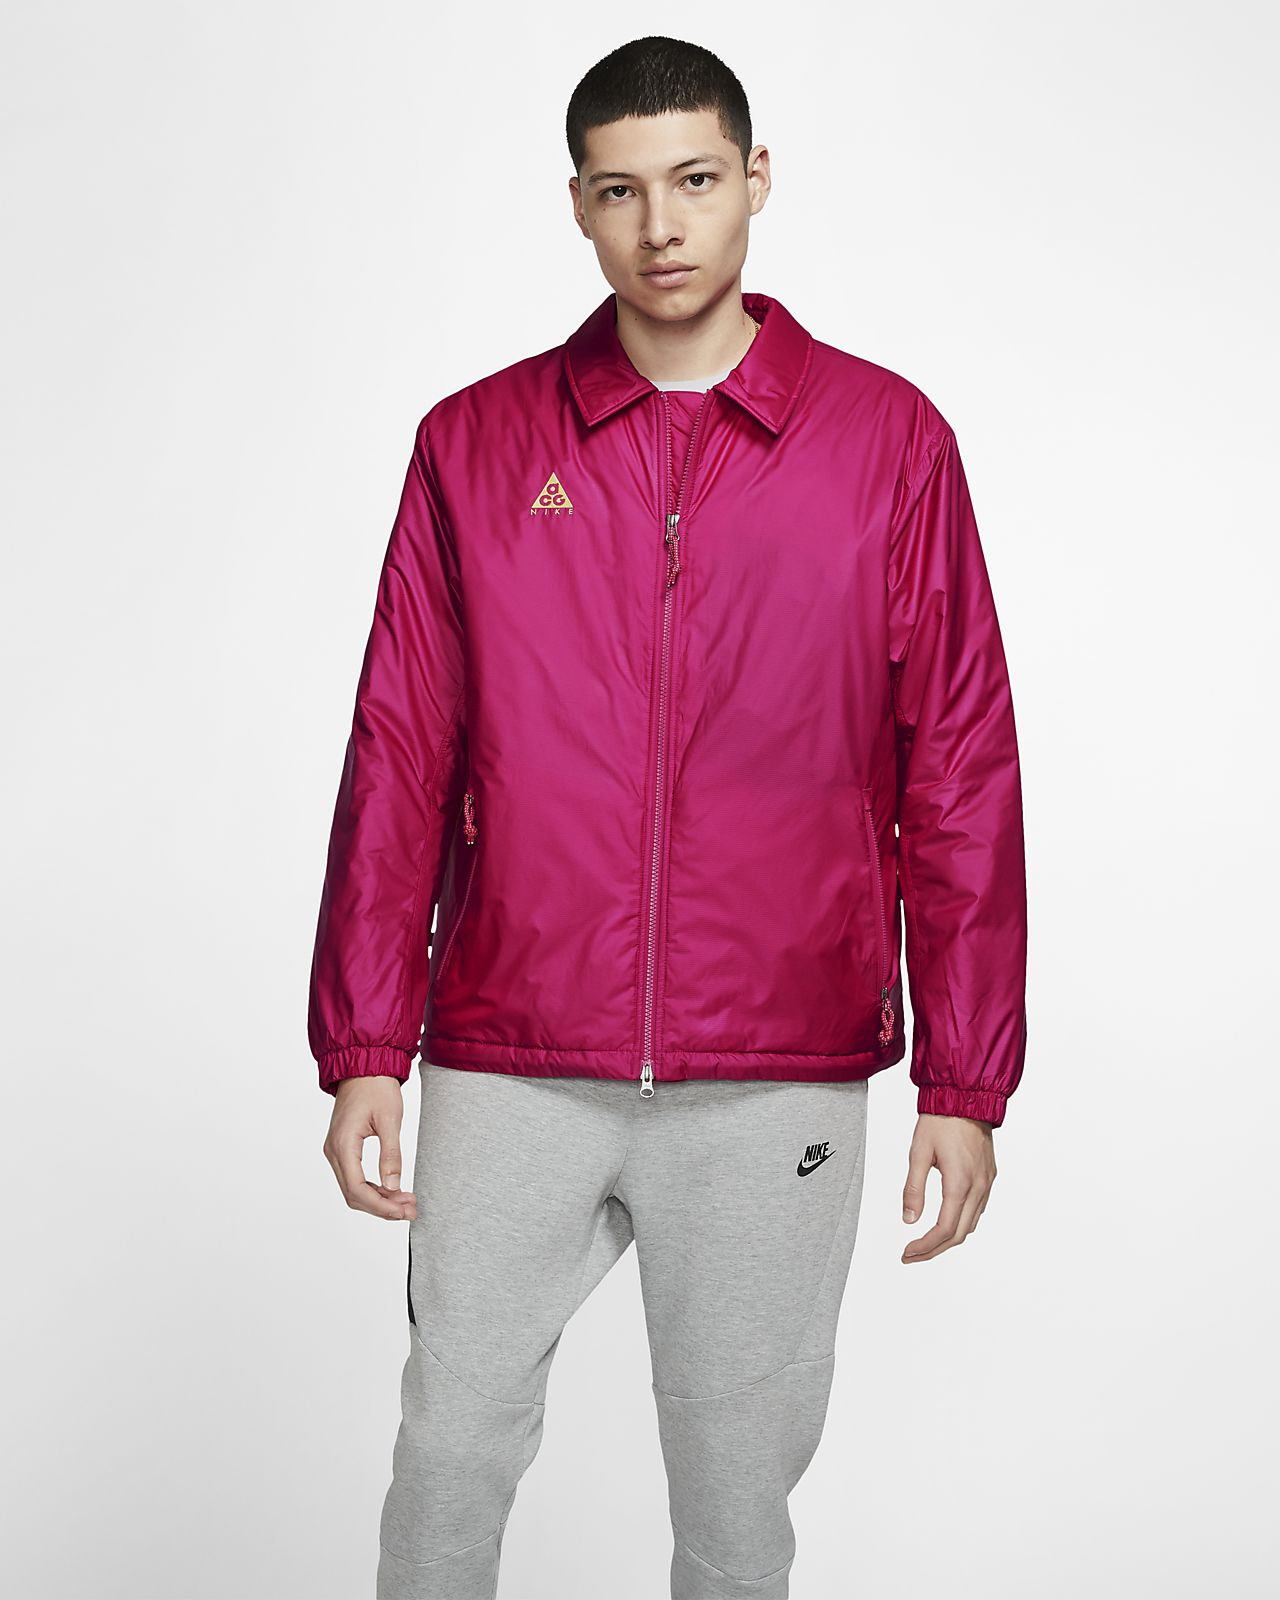 Nike ACG PrimaLoft® Men's Jacket